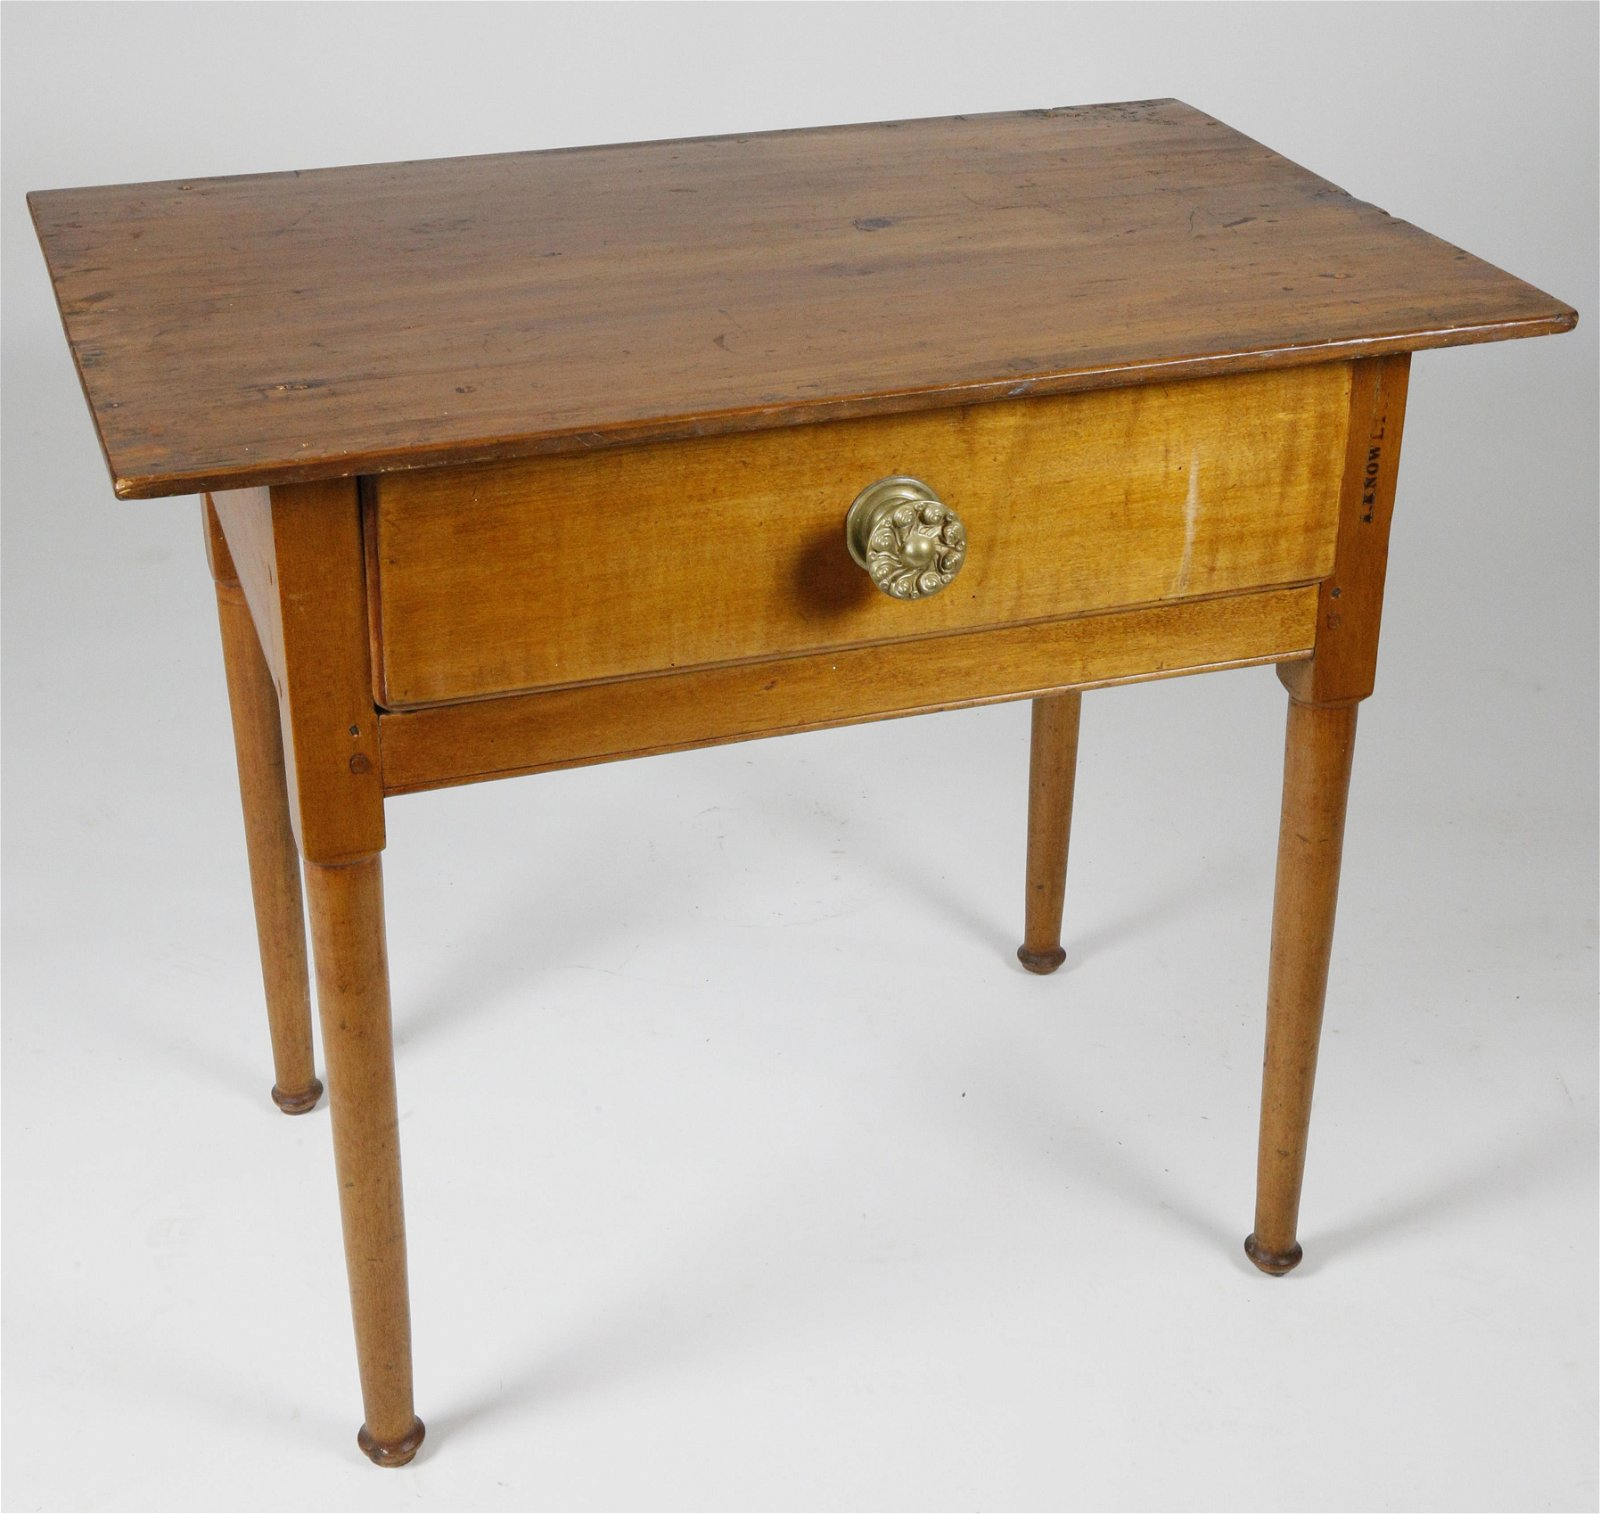 American Pine and Cherry One Drawer Tavern Table, 18th